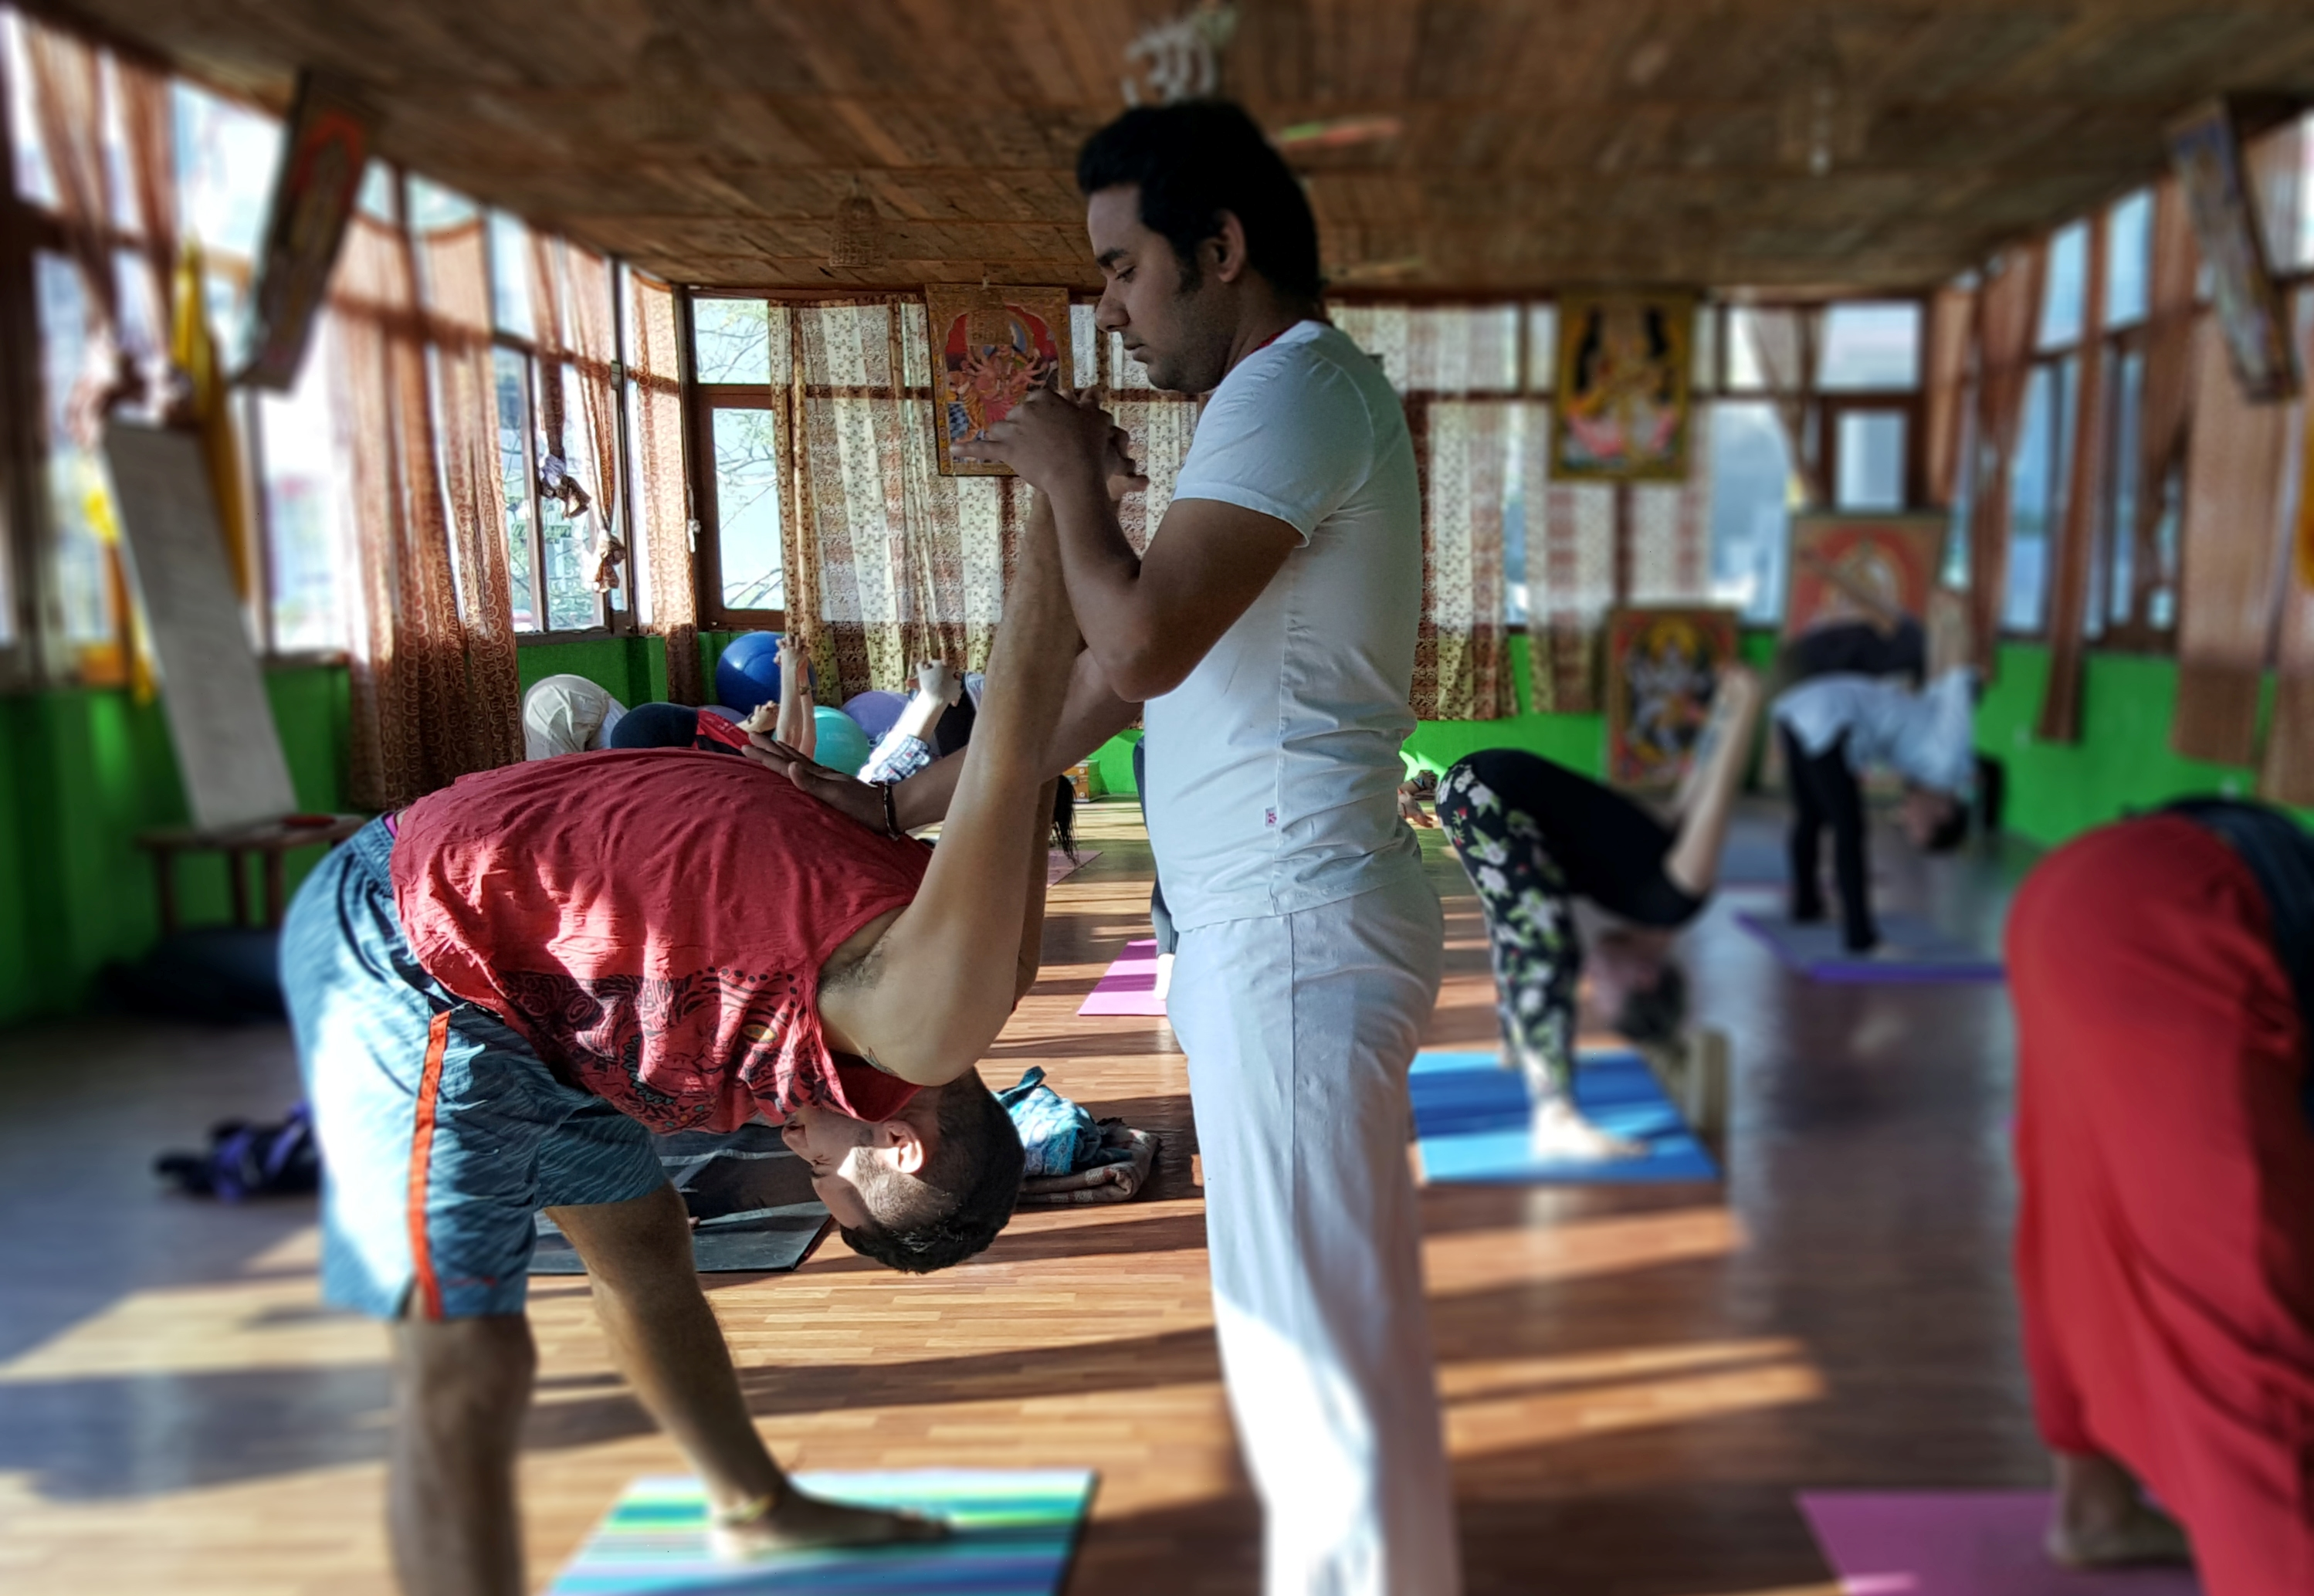 300 Hour Yoga Teacher Training - June 2019